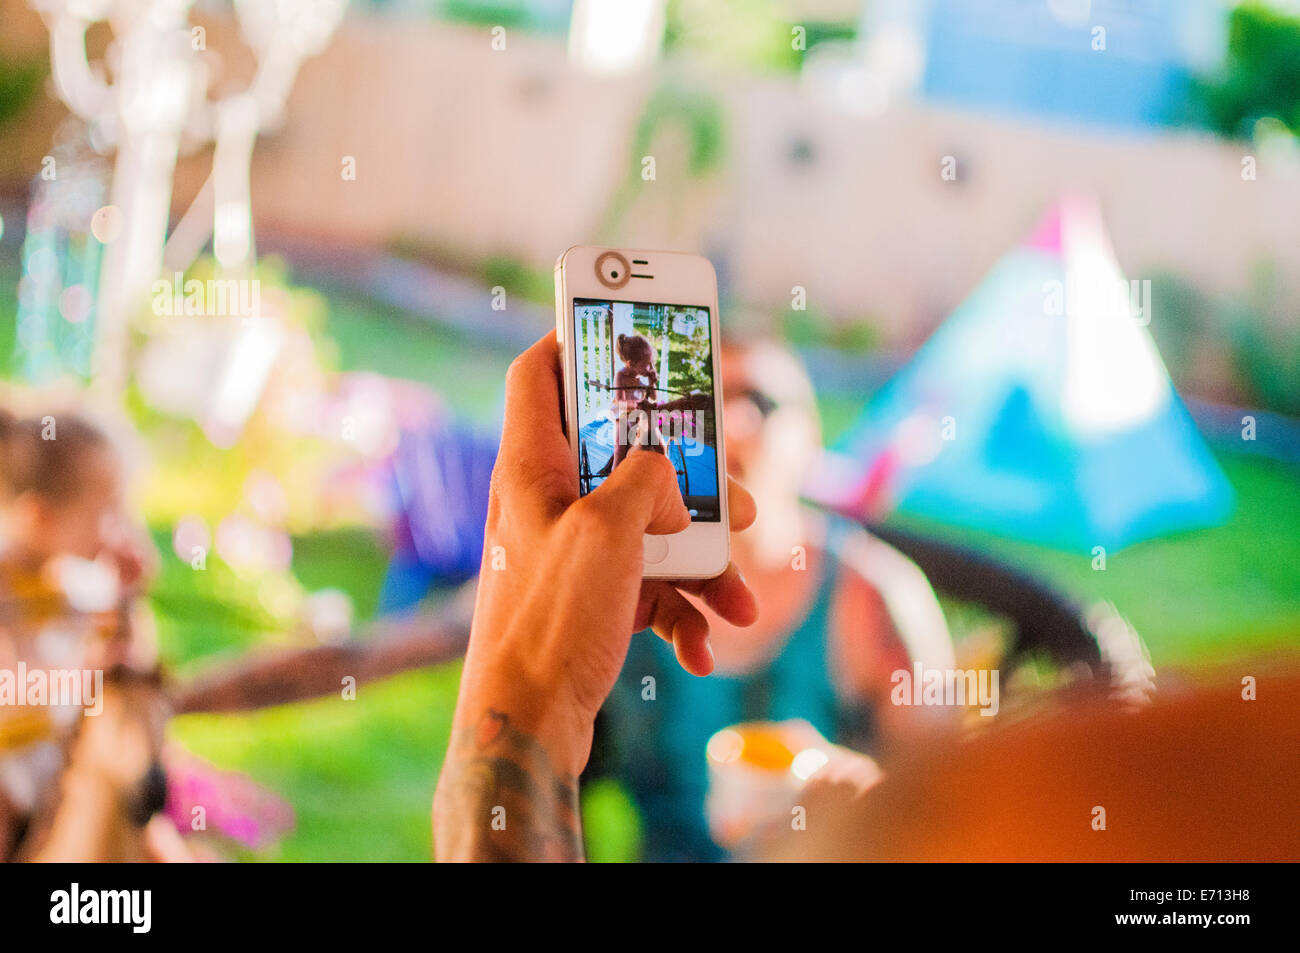 Mid adult man photographing friends on smartphone in garden - Stock Image